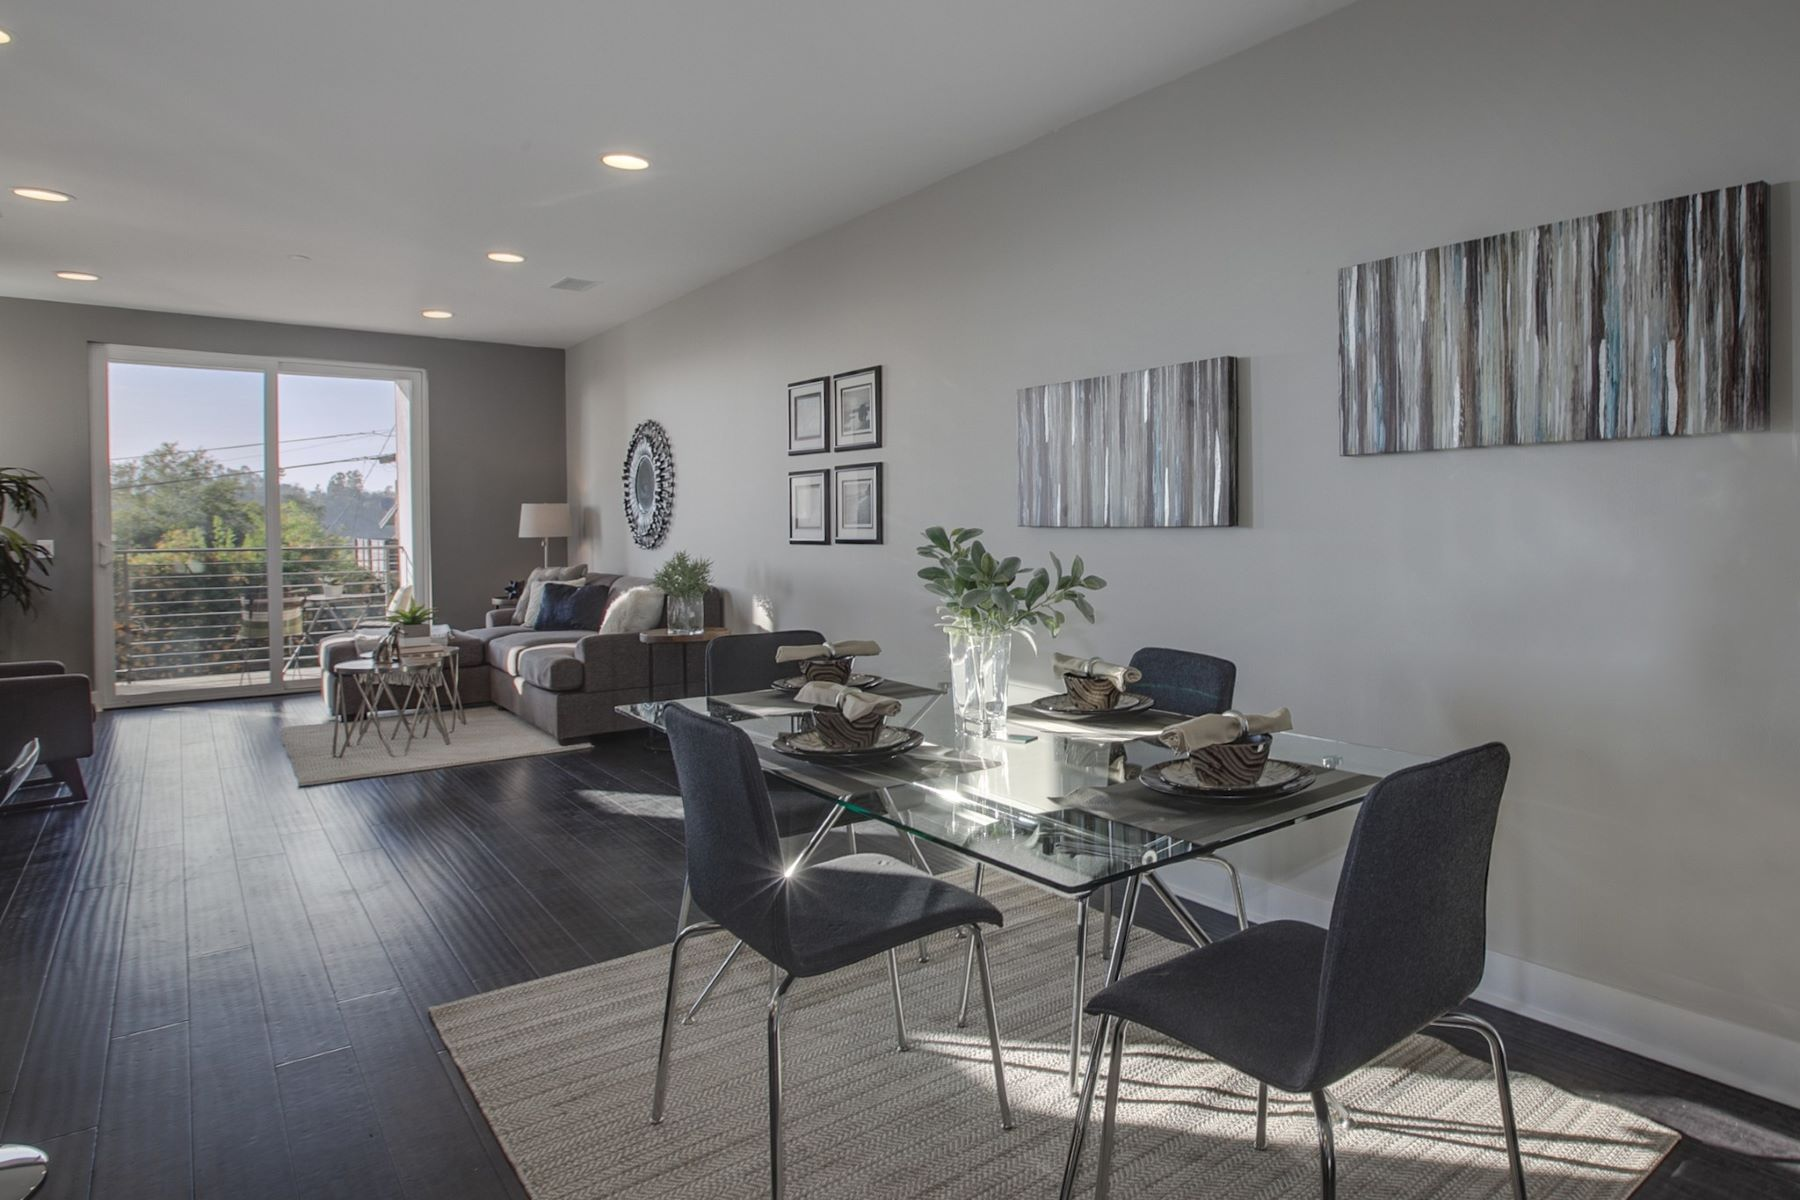 Additional photo for property listing at 1880 Lucretia Ave  Los Angeles, California 90026 United States